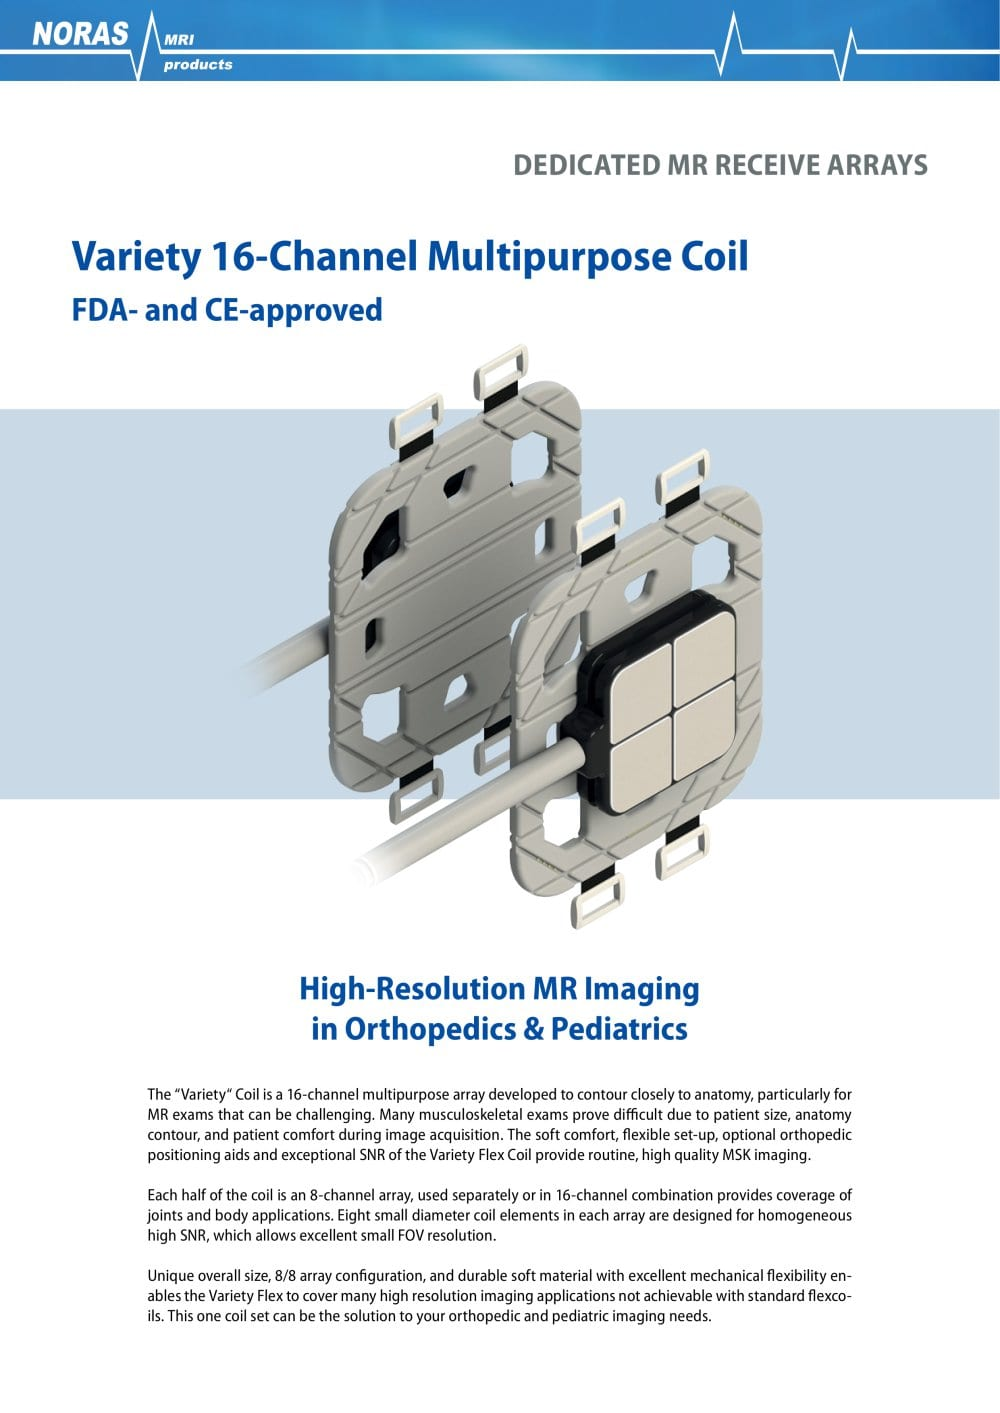 Variety 16-Channel Multipurpose Coil - Noras MRI - PDF Catalogue ...